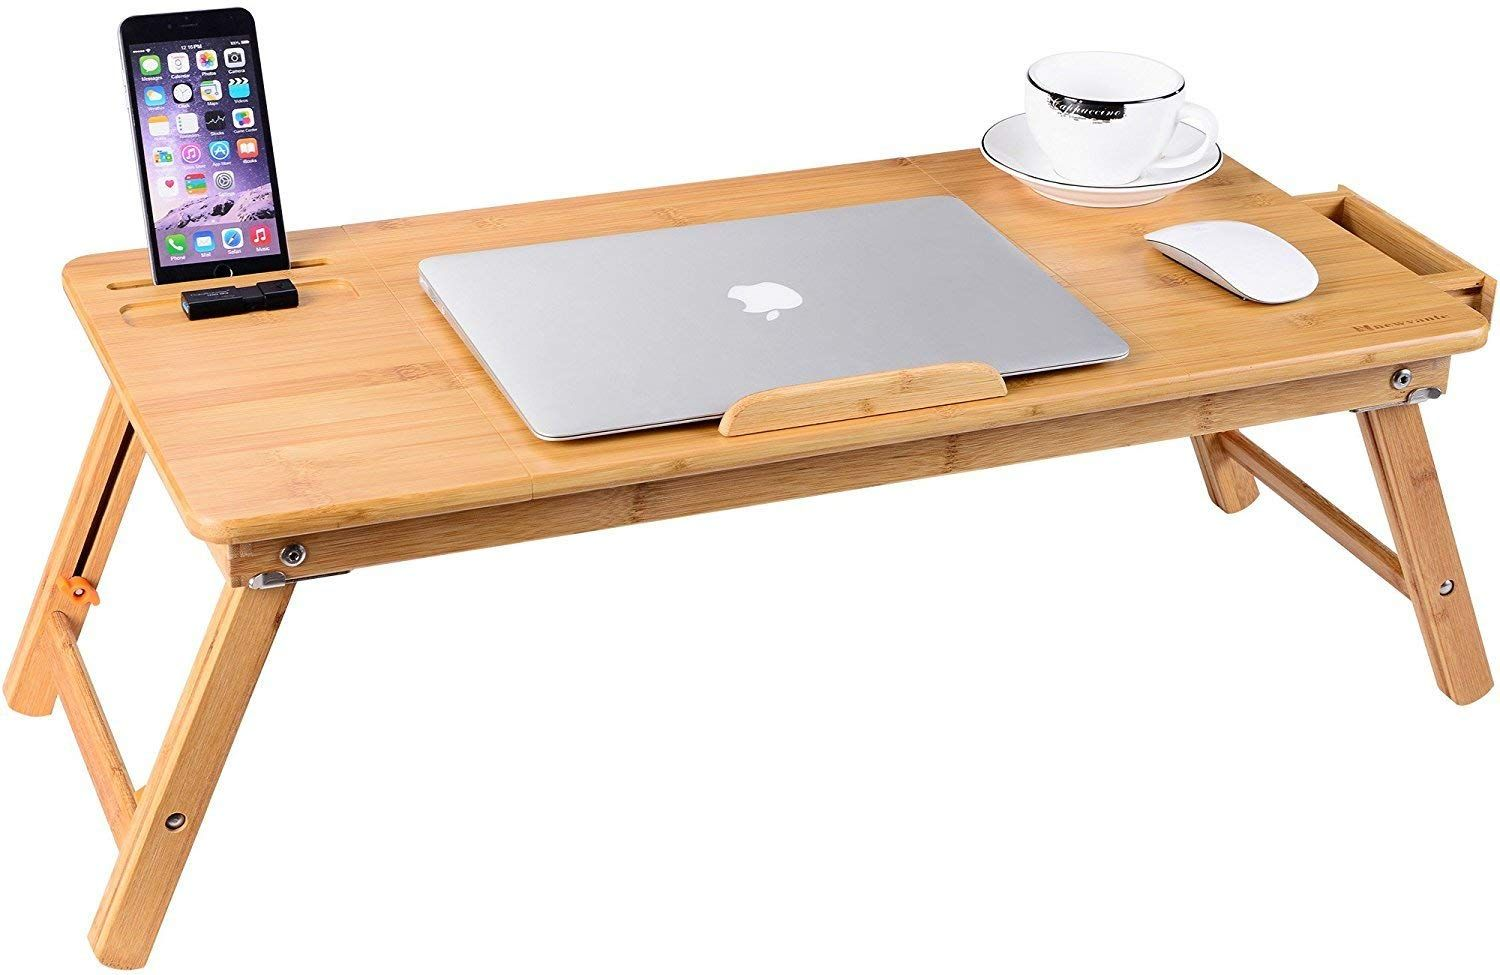 Laptop Desk Nnewvante Bamboo Laptop Table Adjustable Lap Tray Bed Serving Tray Breakfast Table Foldable Coffee Tea Table 5 Tilting Top Angles 2 Latches Prevent Laptop Table For Bed Laptop Table Bed Tray